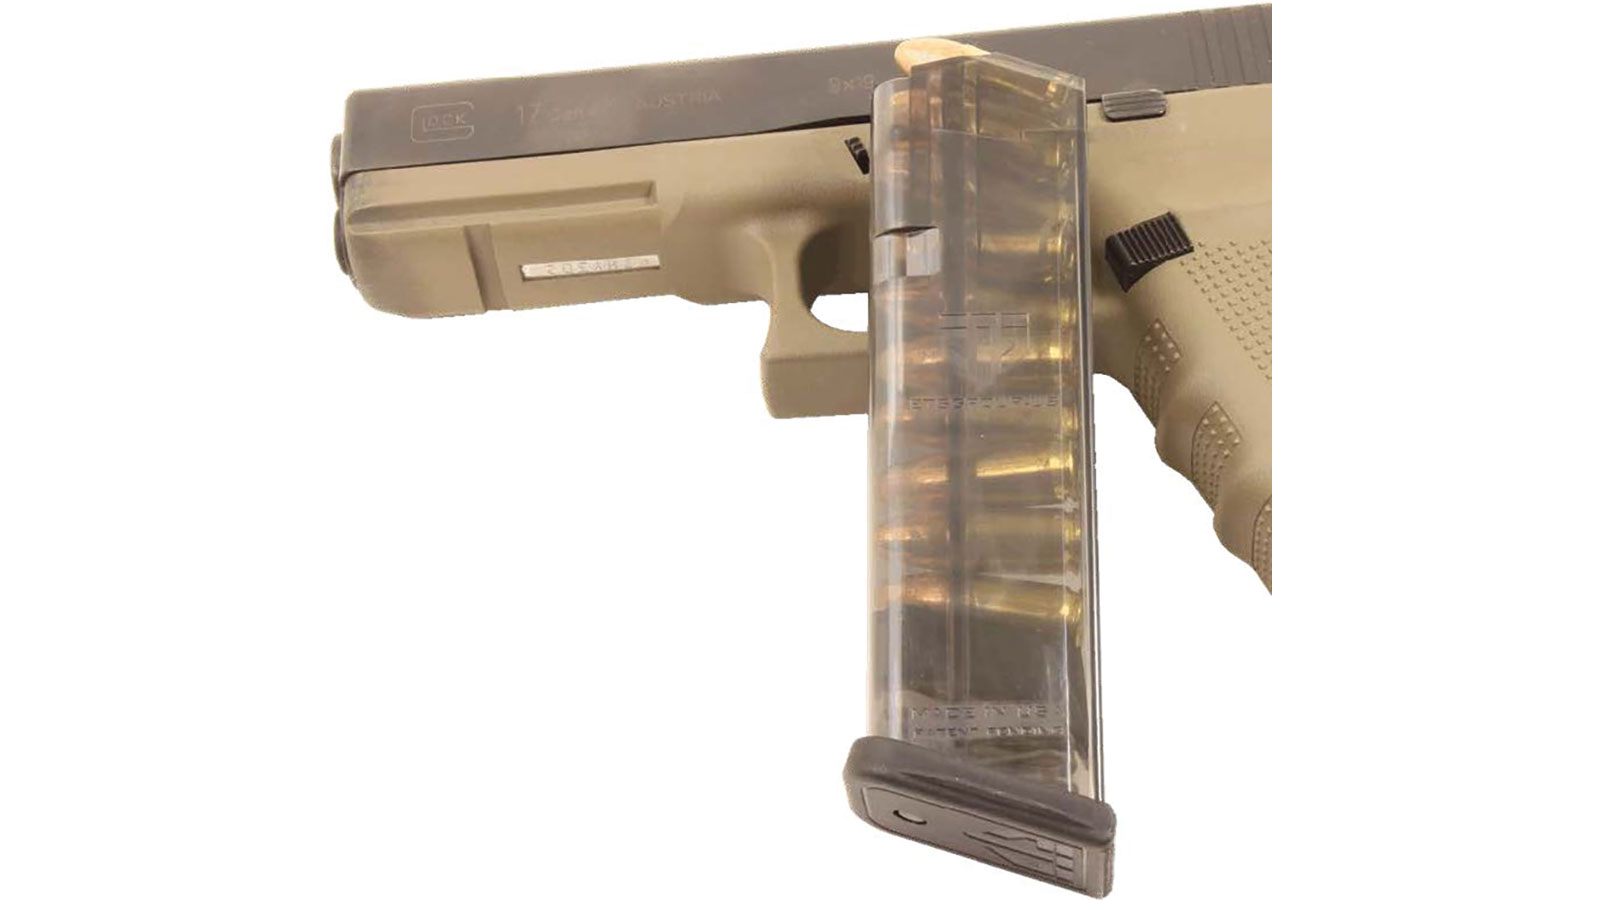 ETS Group GLK-17-10 Glock 17 9mm 10 rd G17|18|19|26|34 (Gen 1-4) Polymer Clear Finish